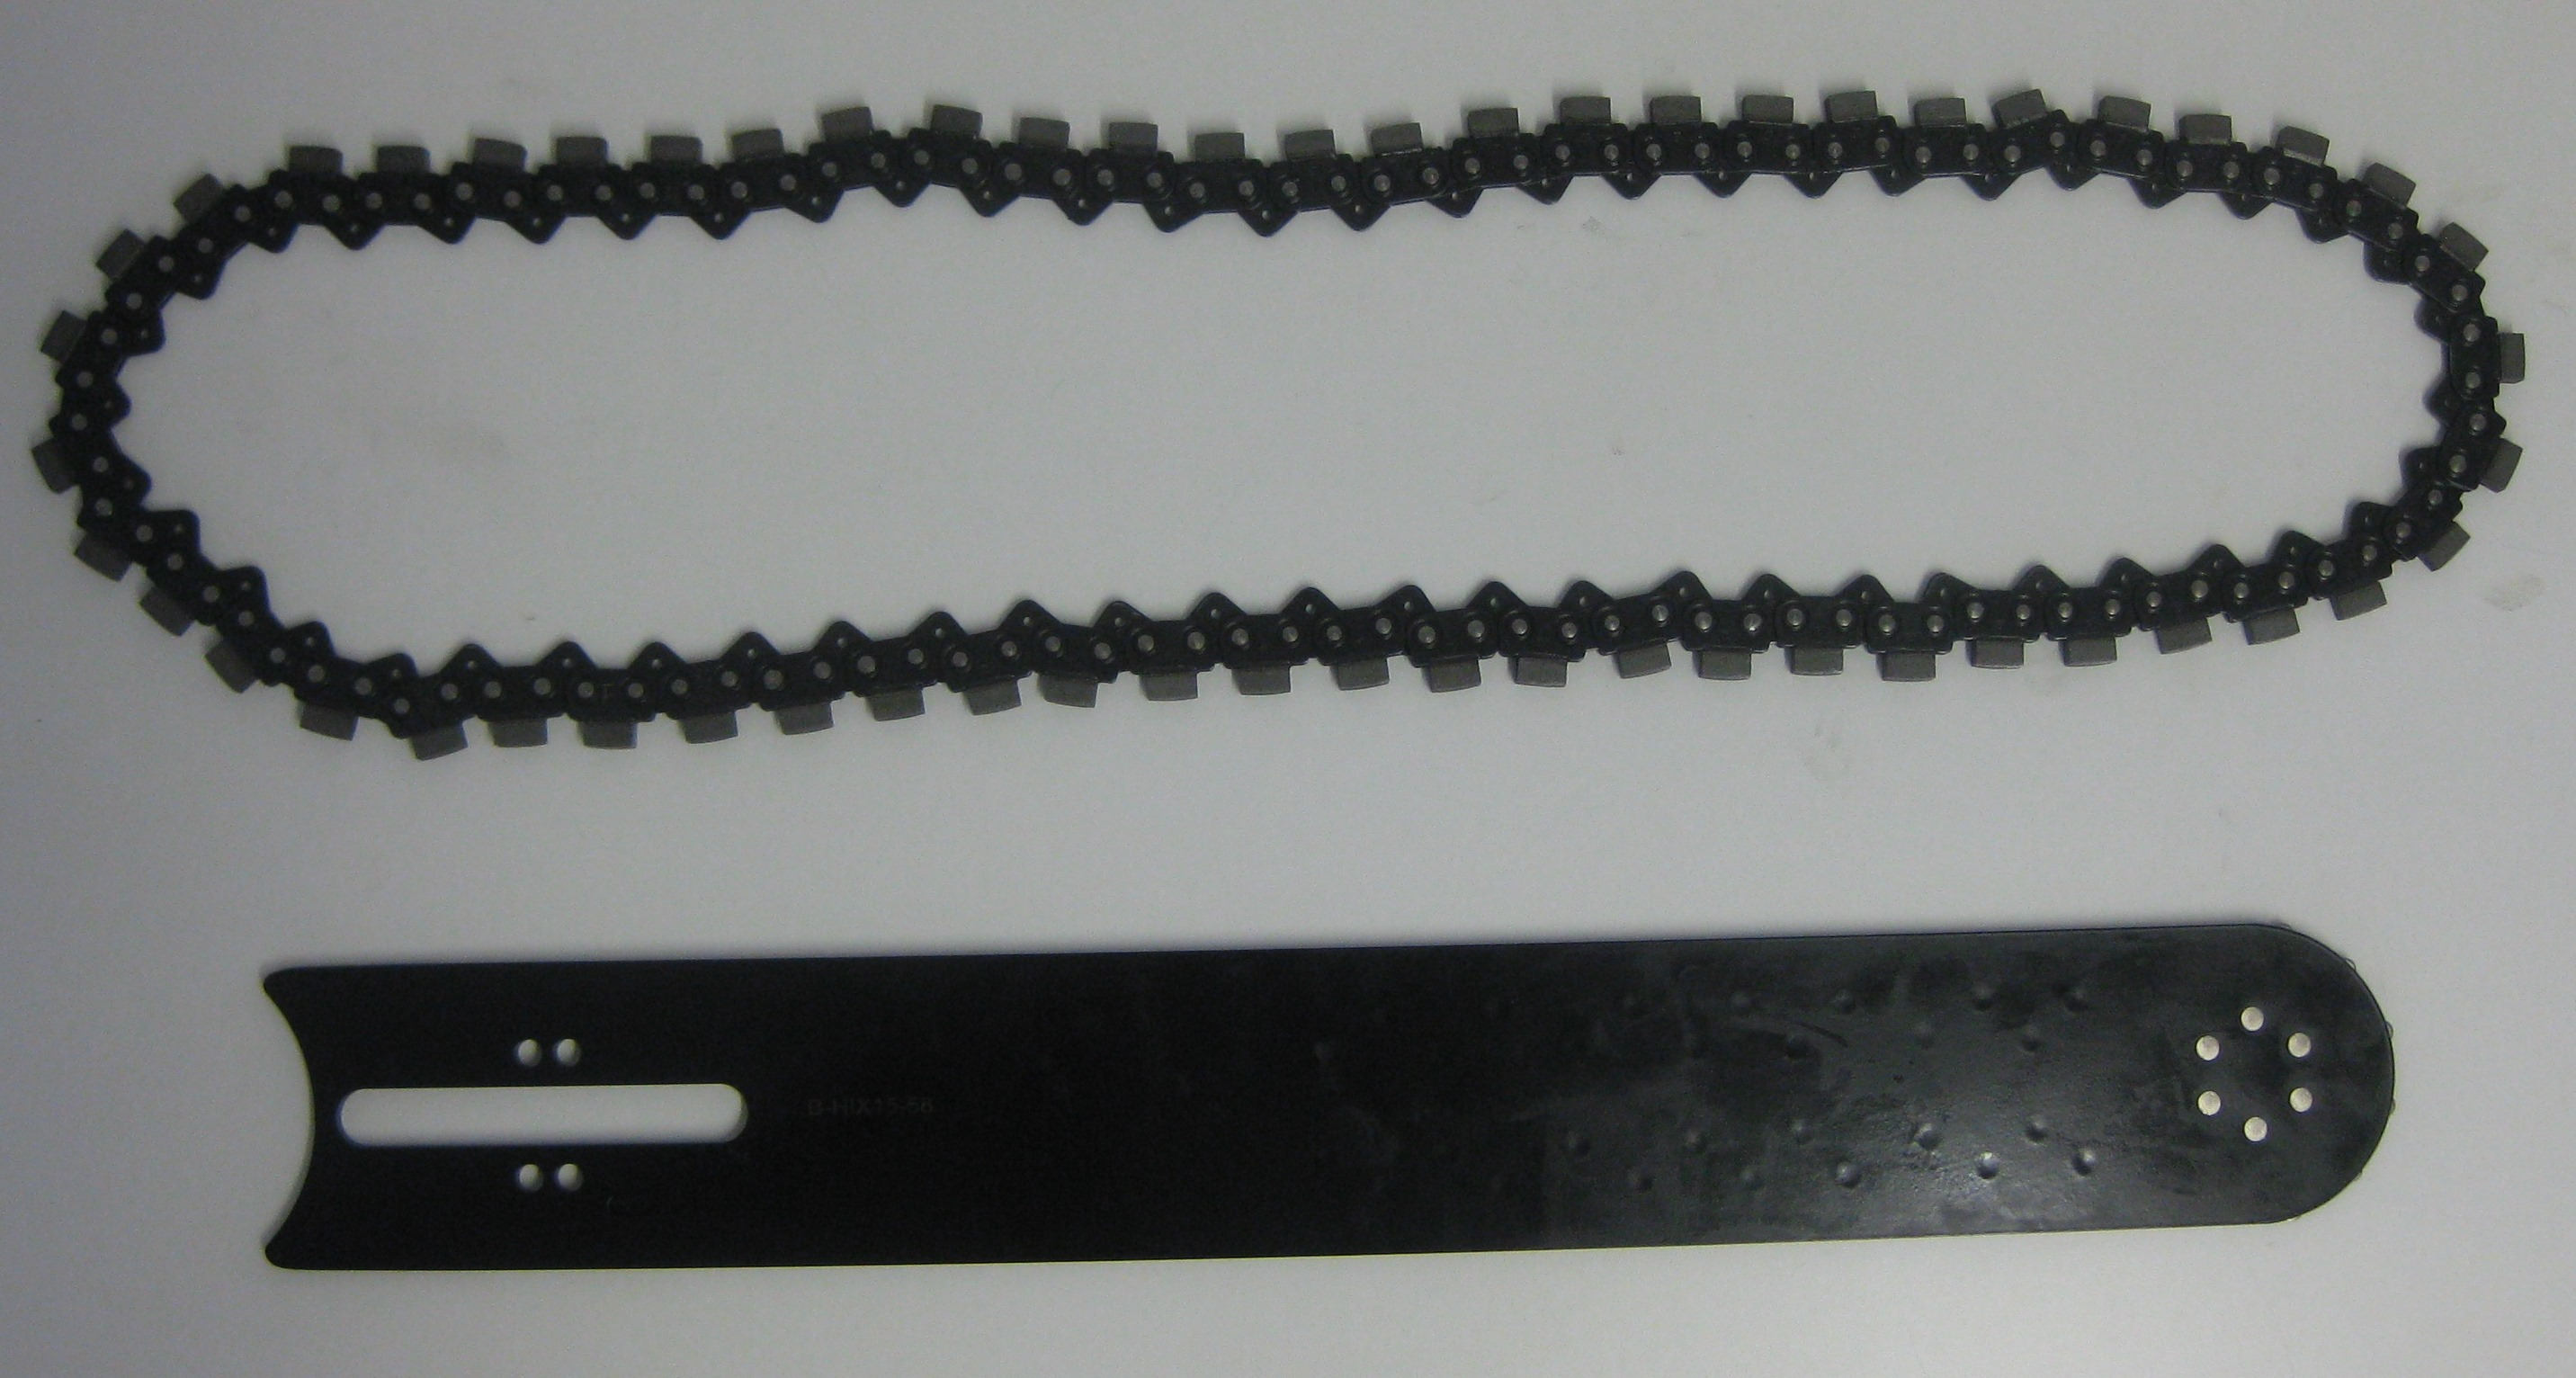 Diamond chain, guide bar, chain saw, chain for saw, ICS chain saw, ICS chain